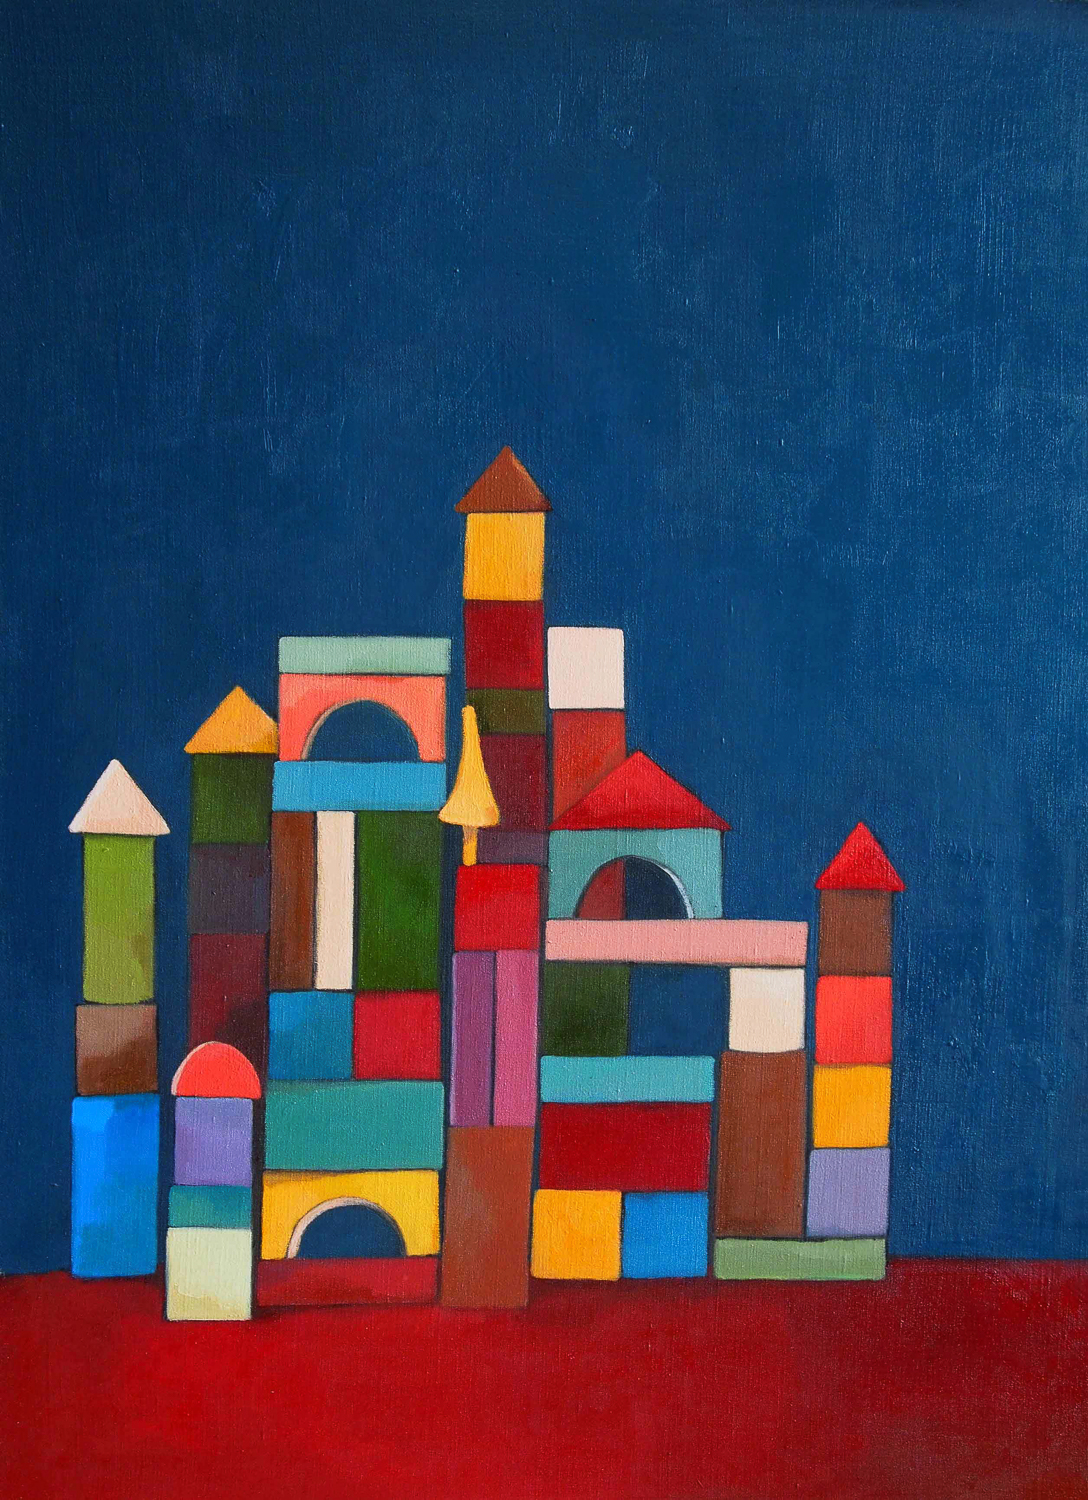 building bloks #4, 60x80 cm, huile sur toile/oil on canvas